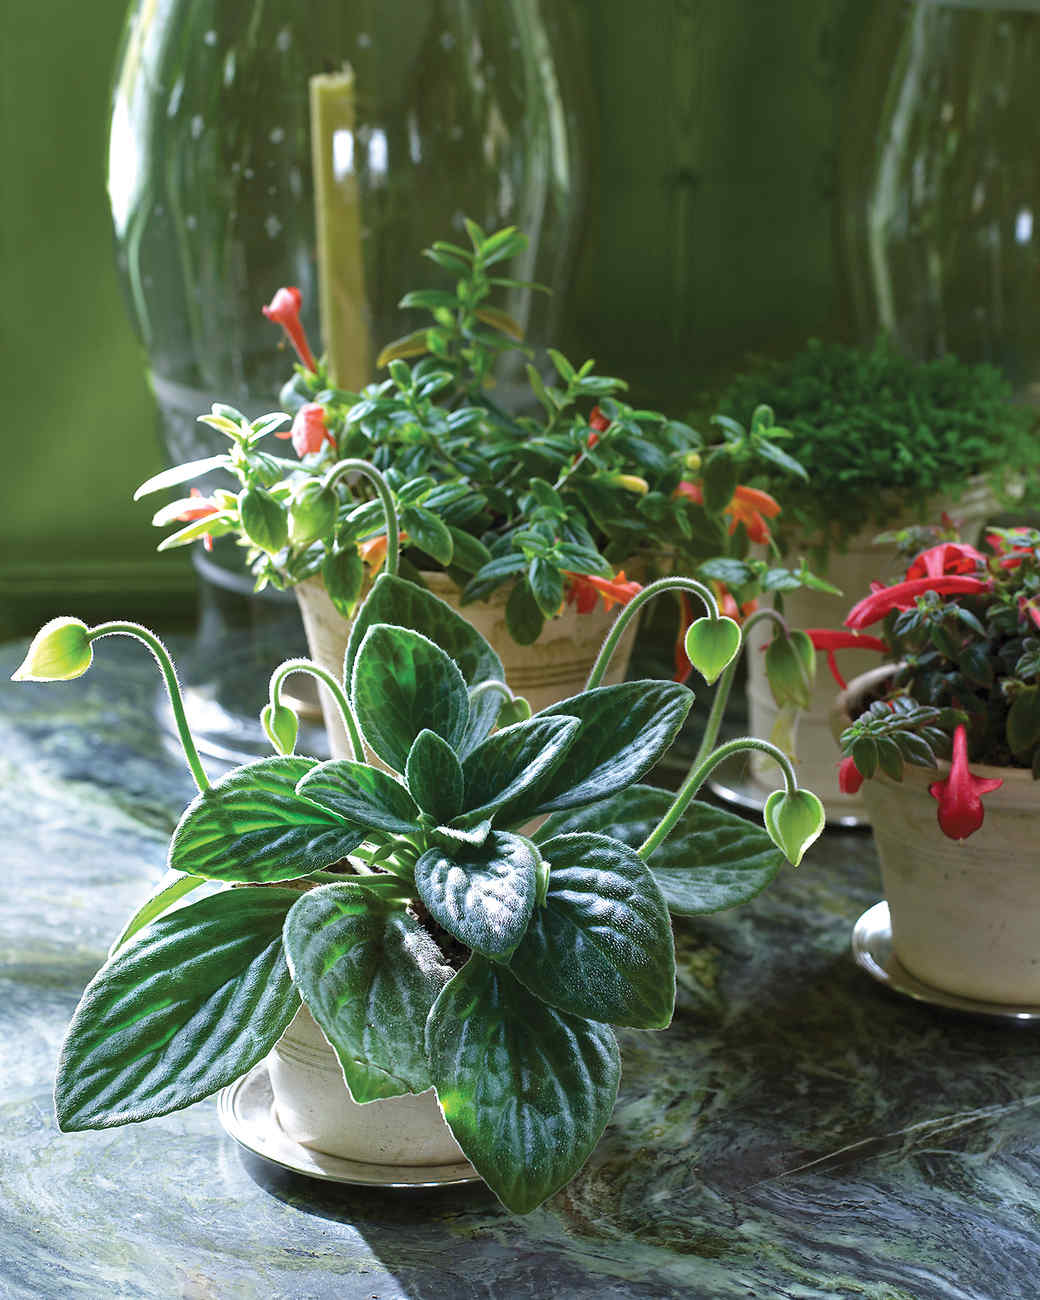 marthas home decorating with houseplants martha stewart - House Plants Decoration Ideas